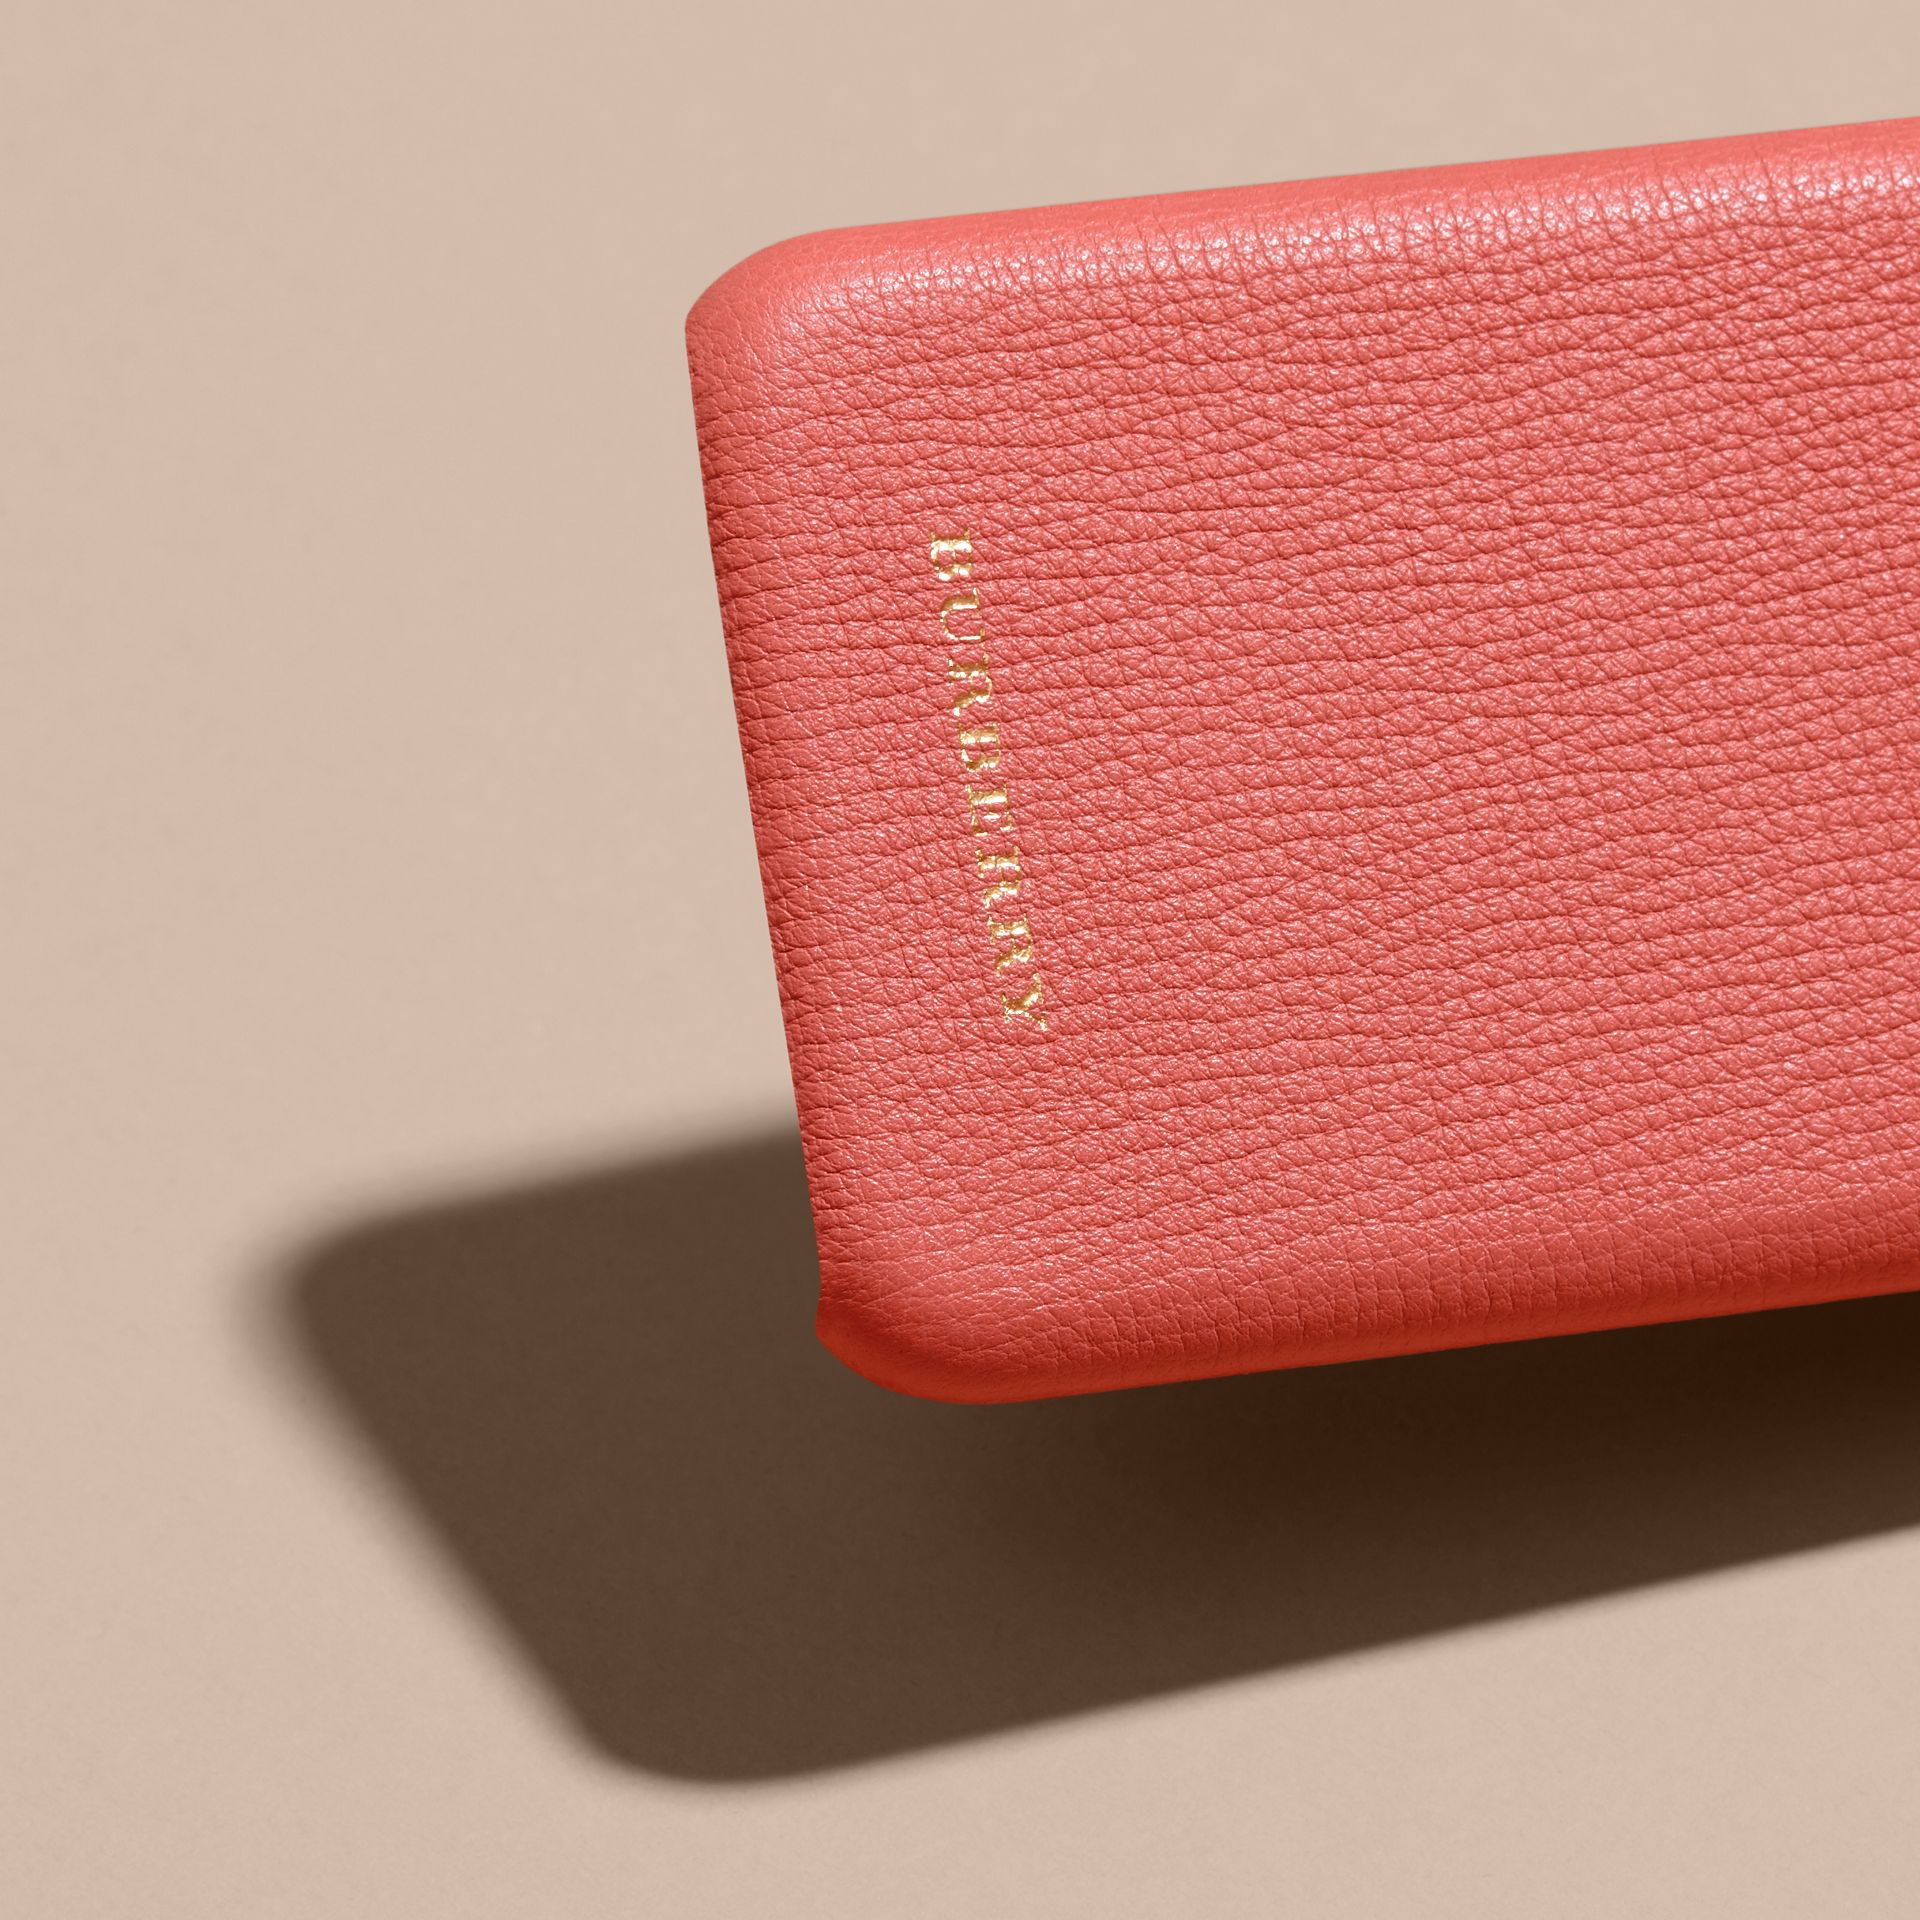 Grainy Leather iPhone 6 Case in Copper Pink - Women | Burberry - gallery image 2